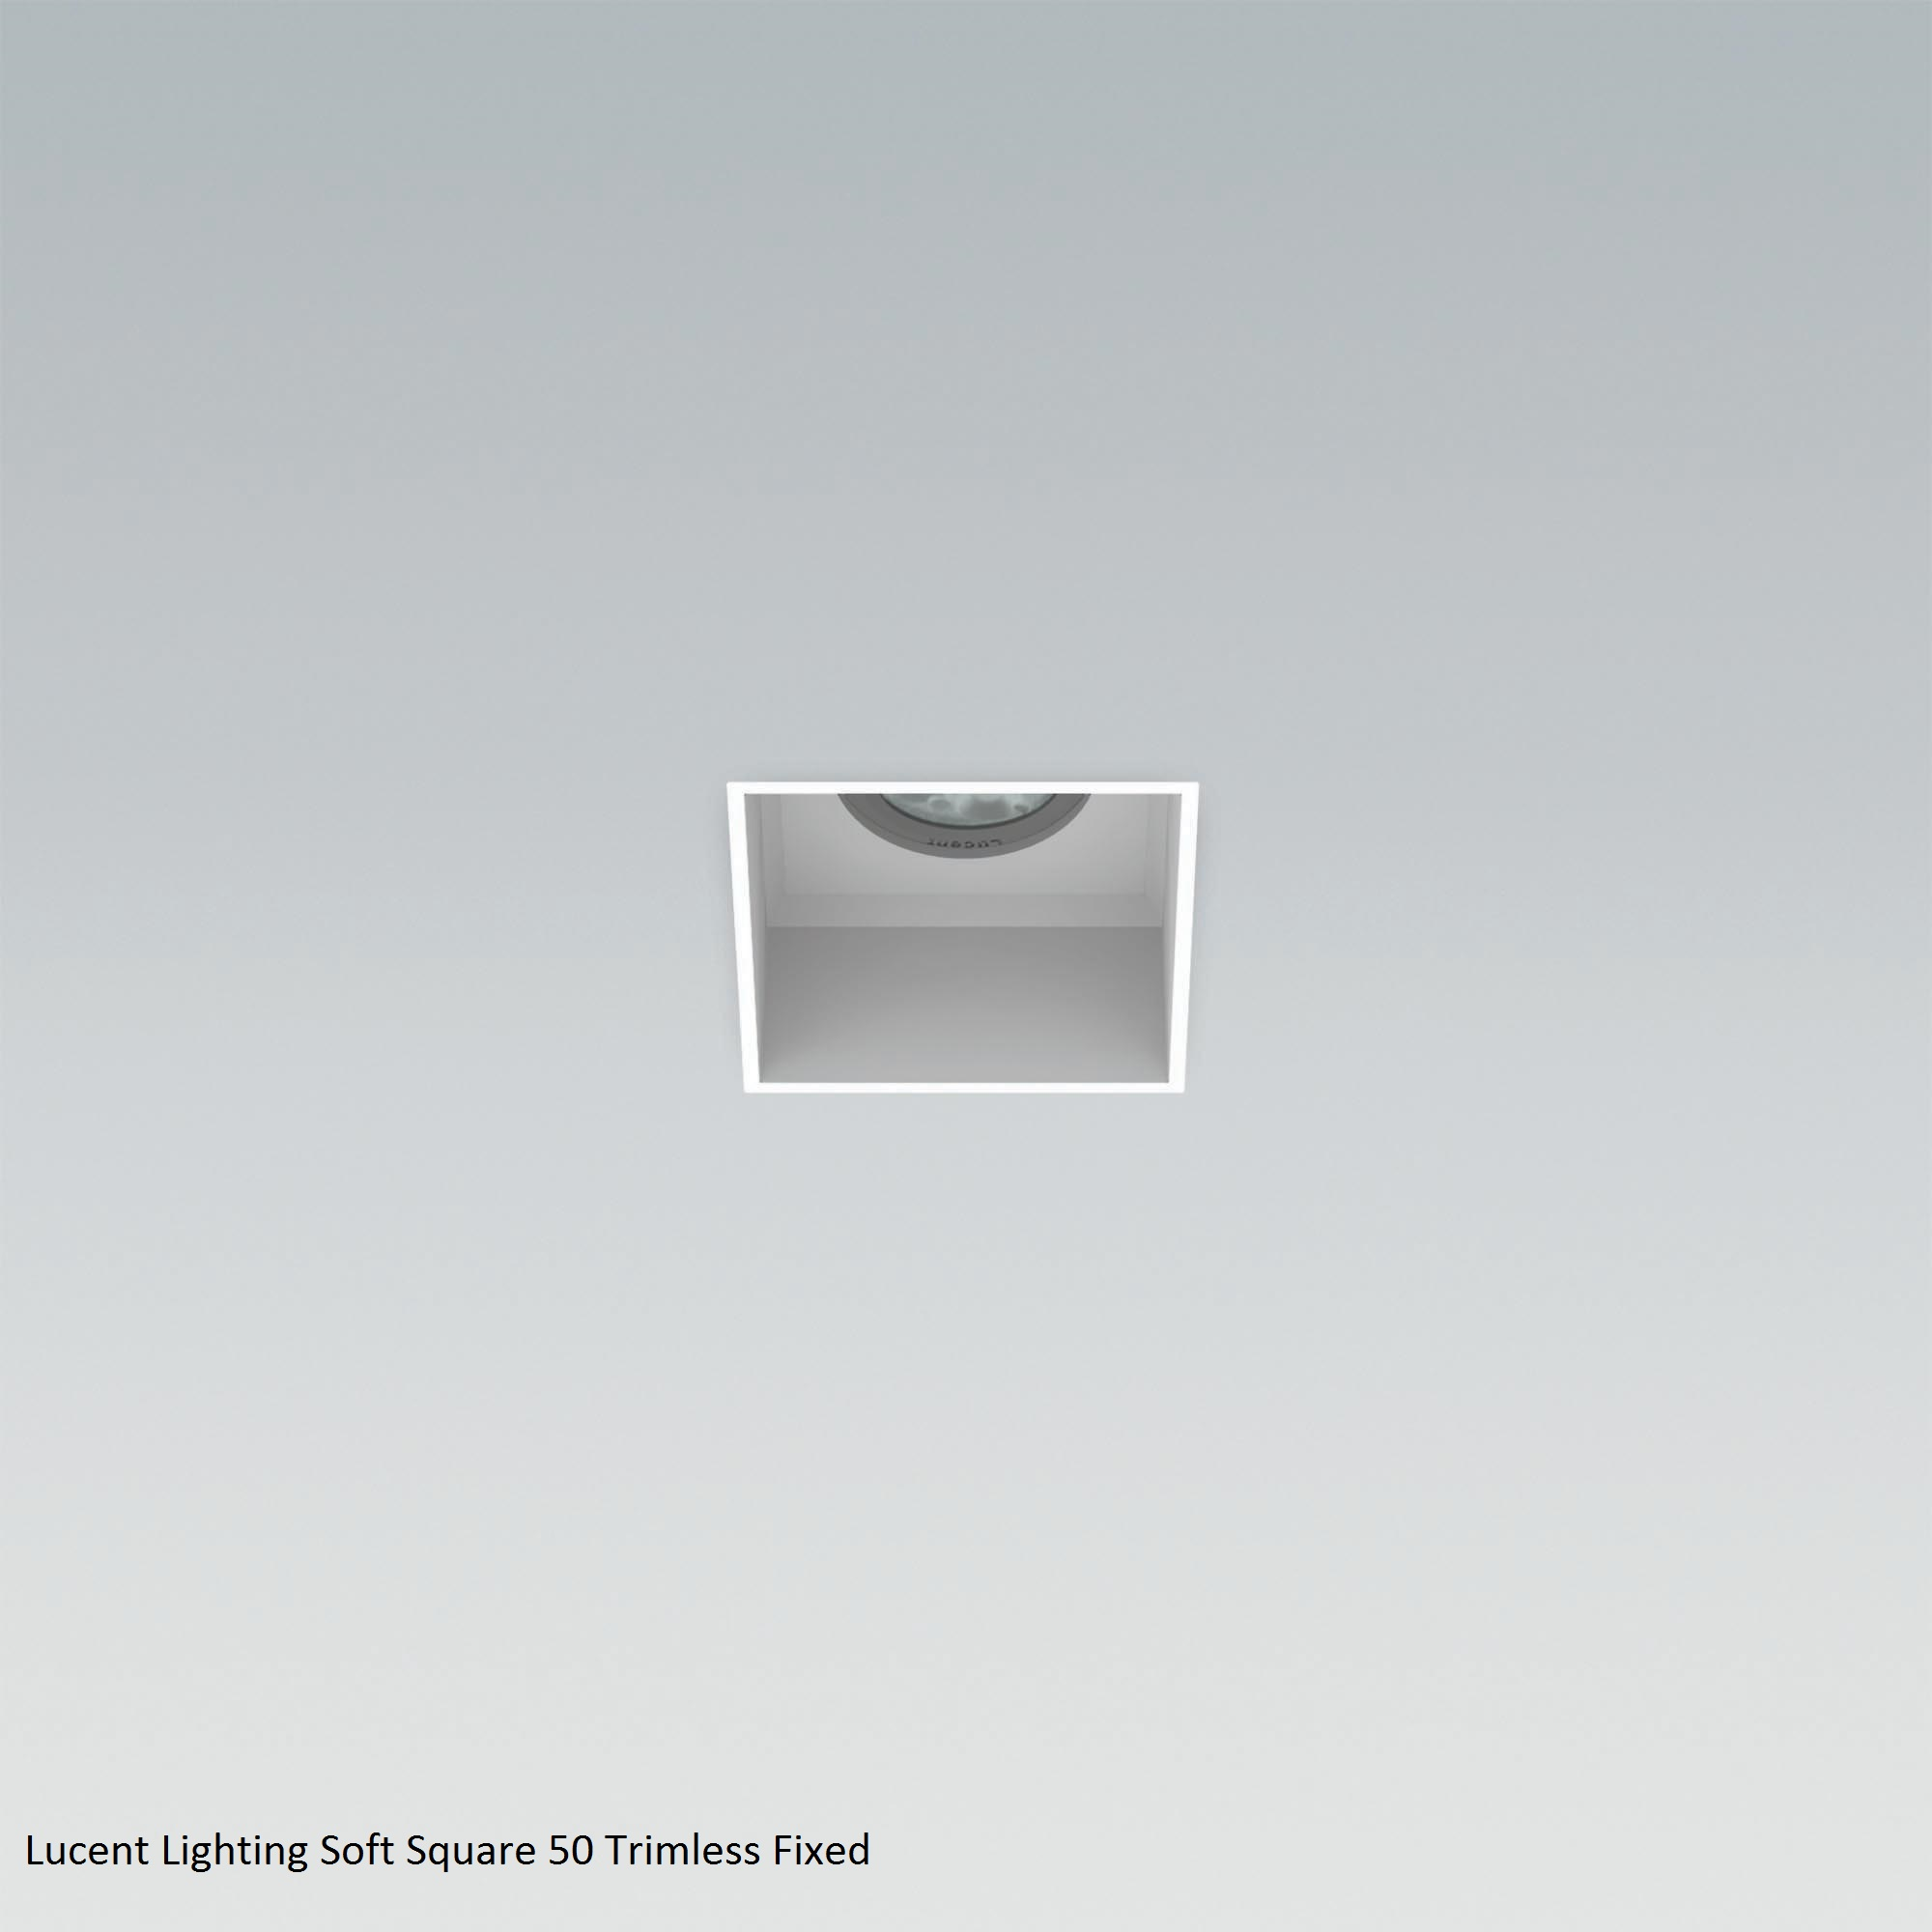 lucent-lighting-soft-square-50-trimless-fixed